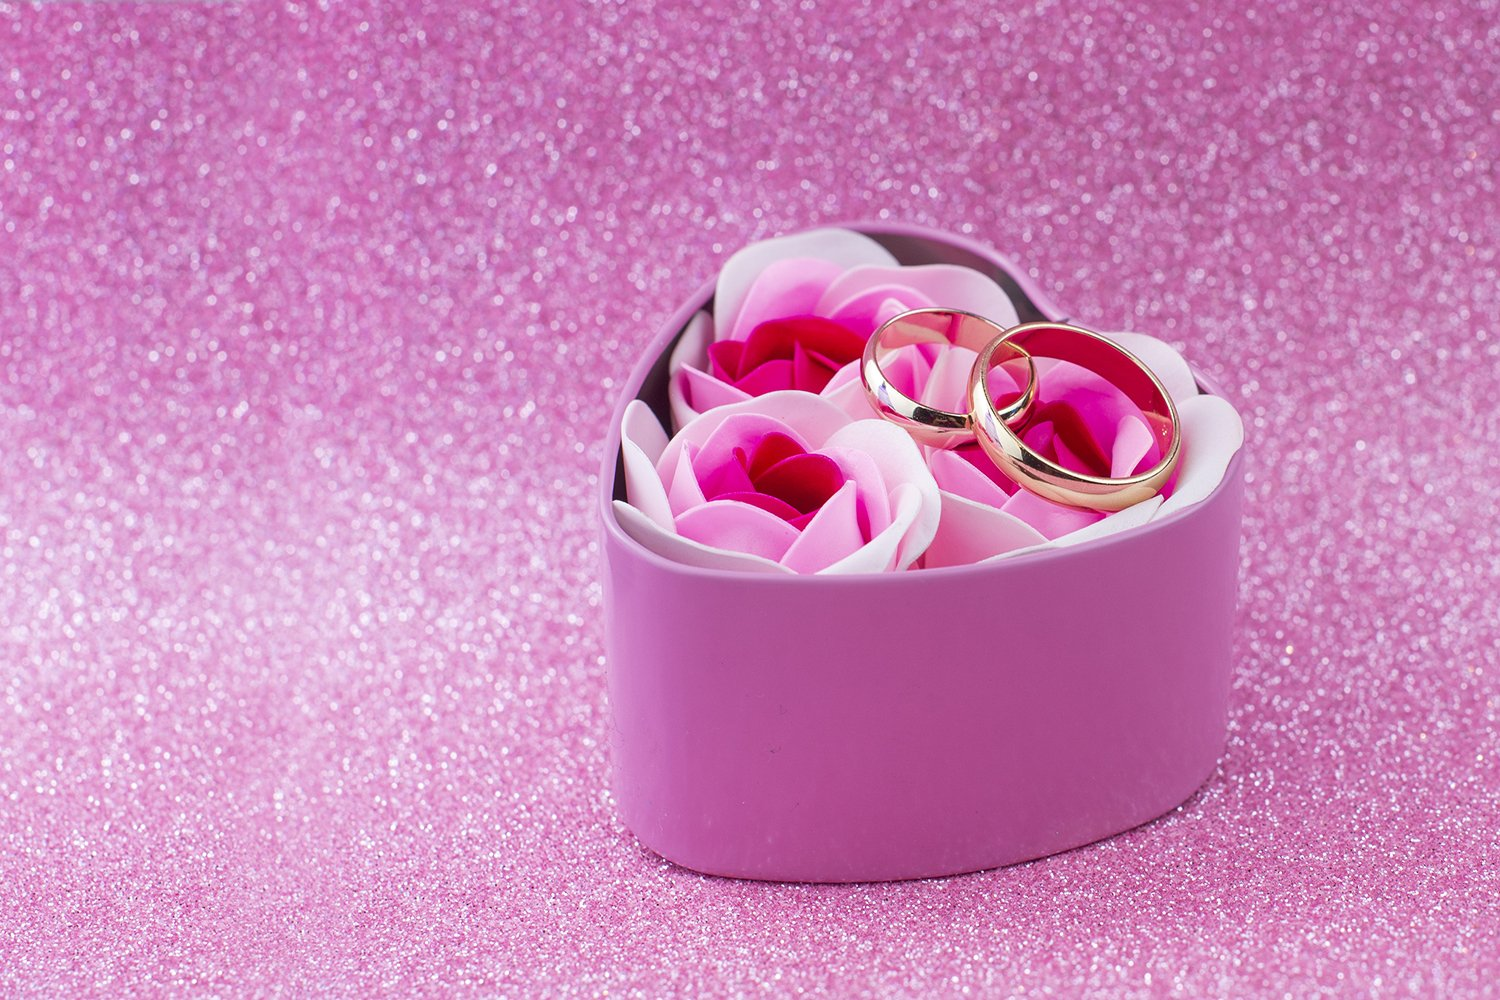 box surprise gift pink hearts with gold wedding rings example image 1